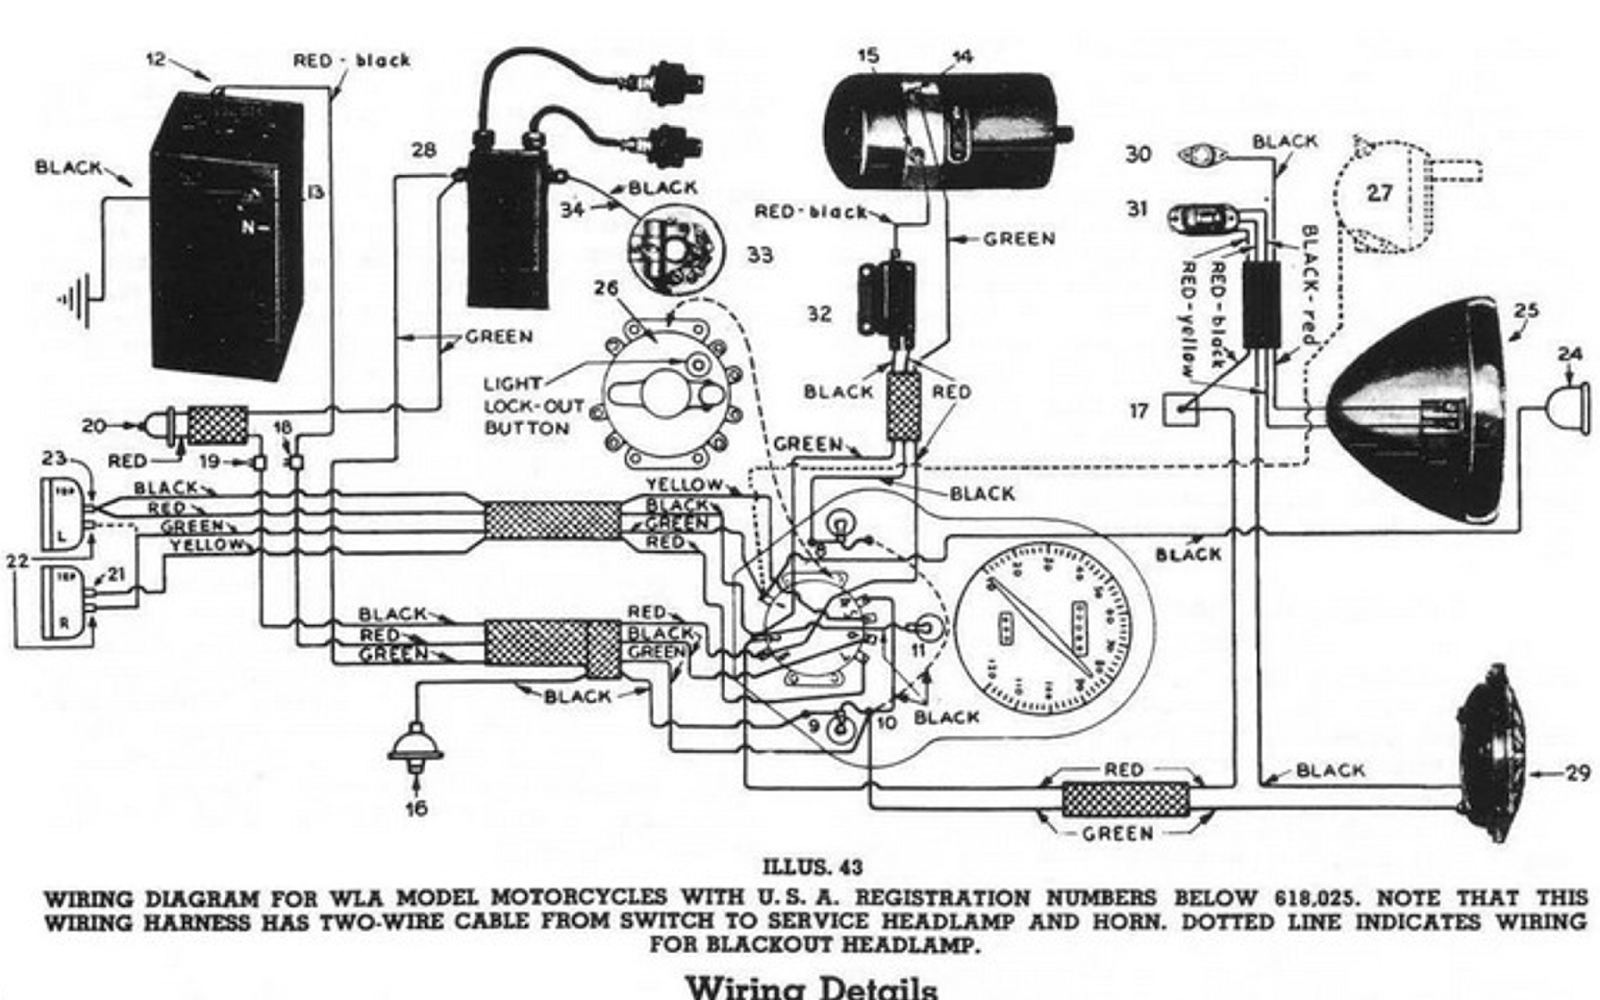 hight resolution of 1941 harley davidson wl restoration re wiring the harley davidson wl harley sportster ignition switch diagram